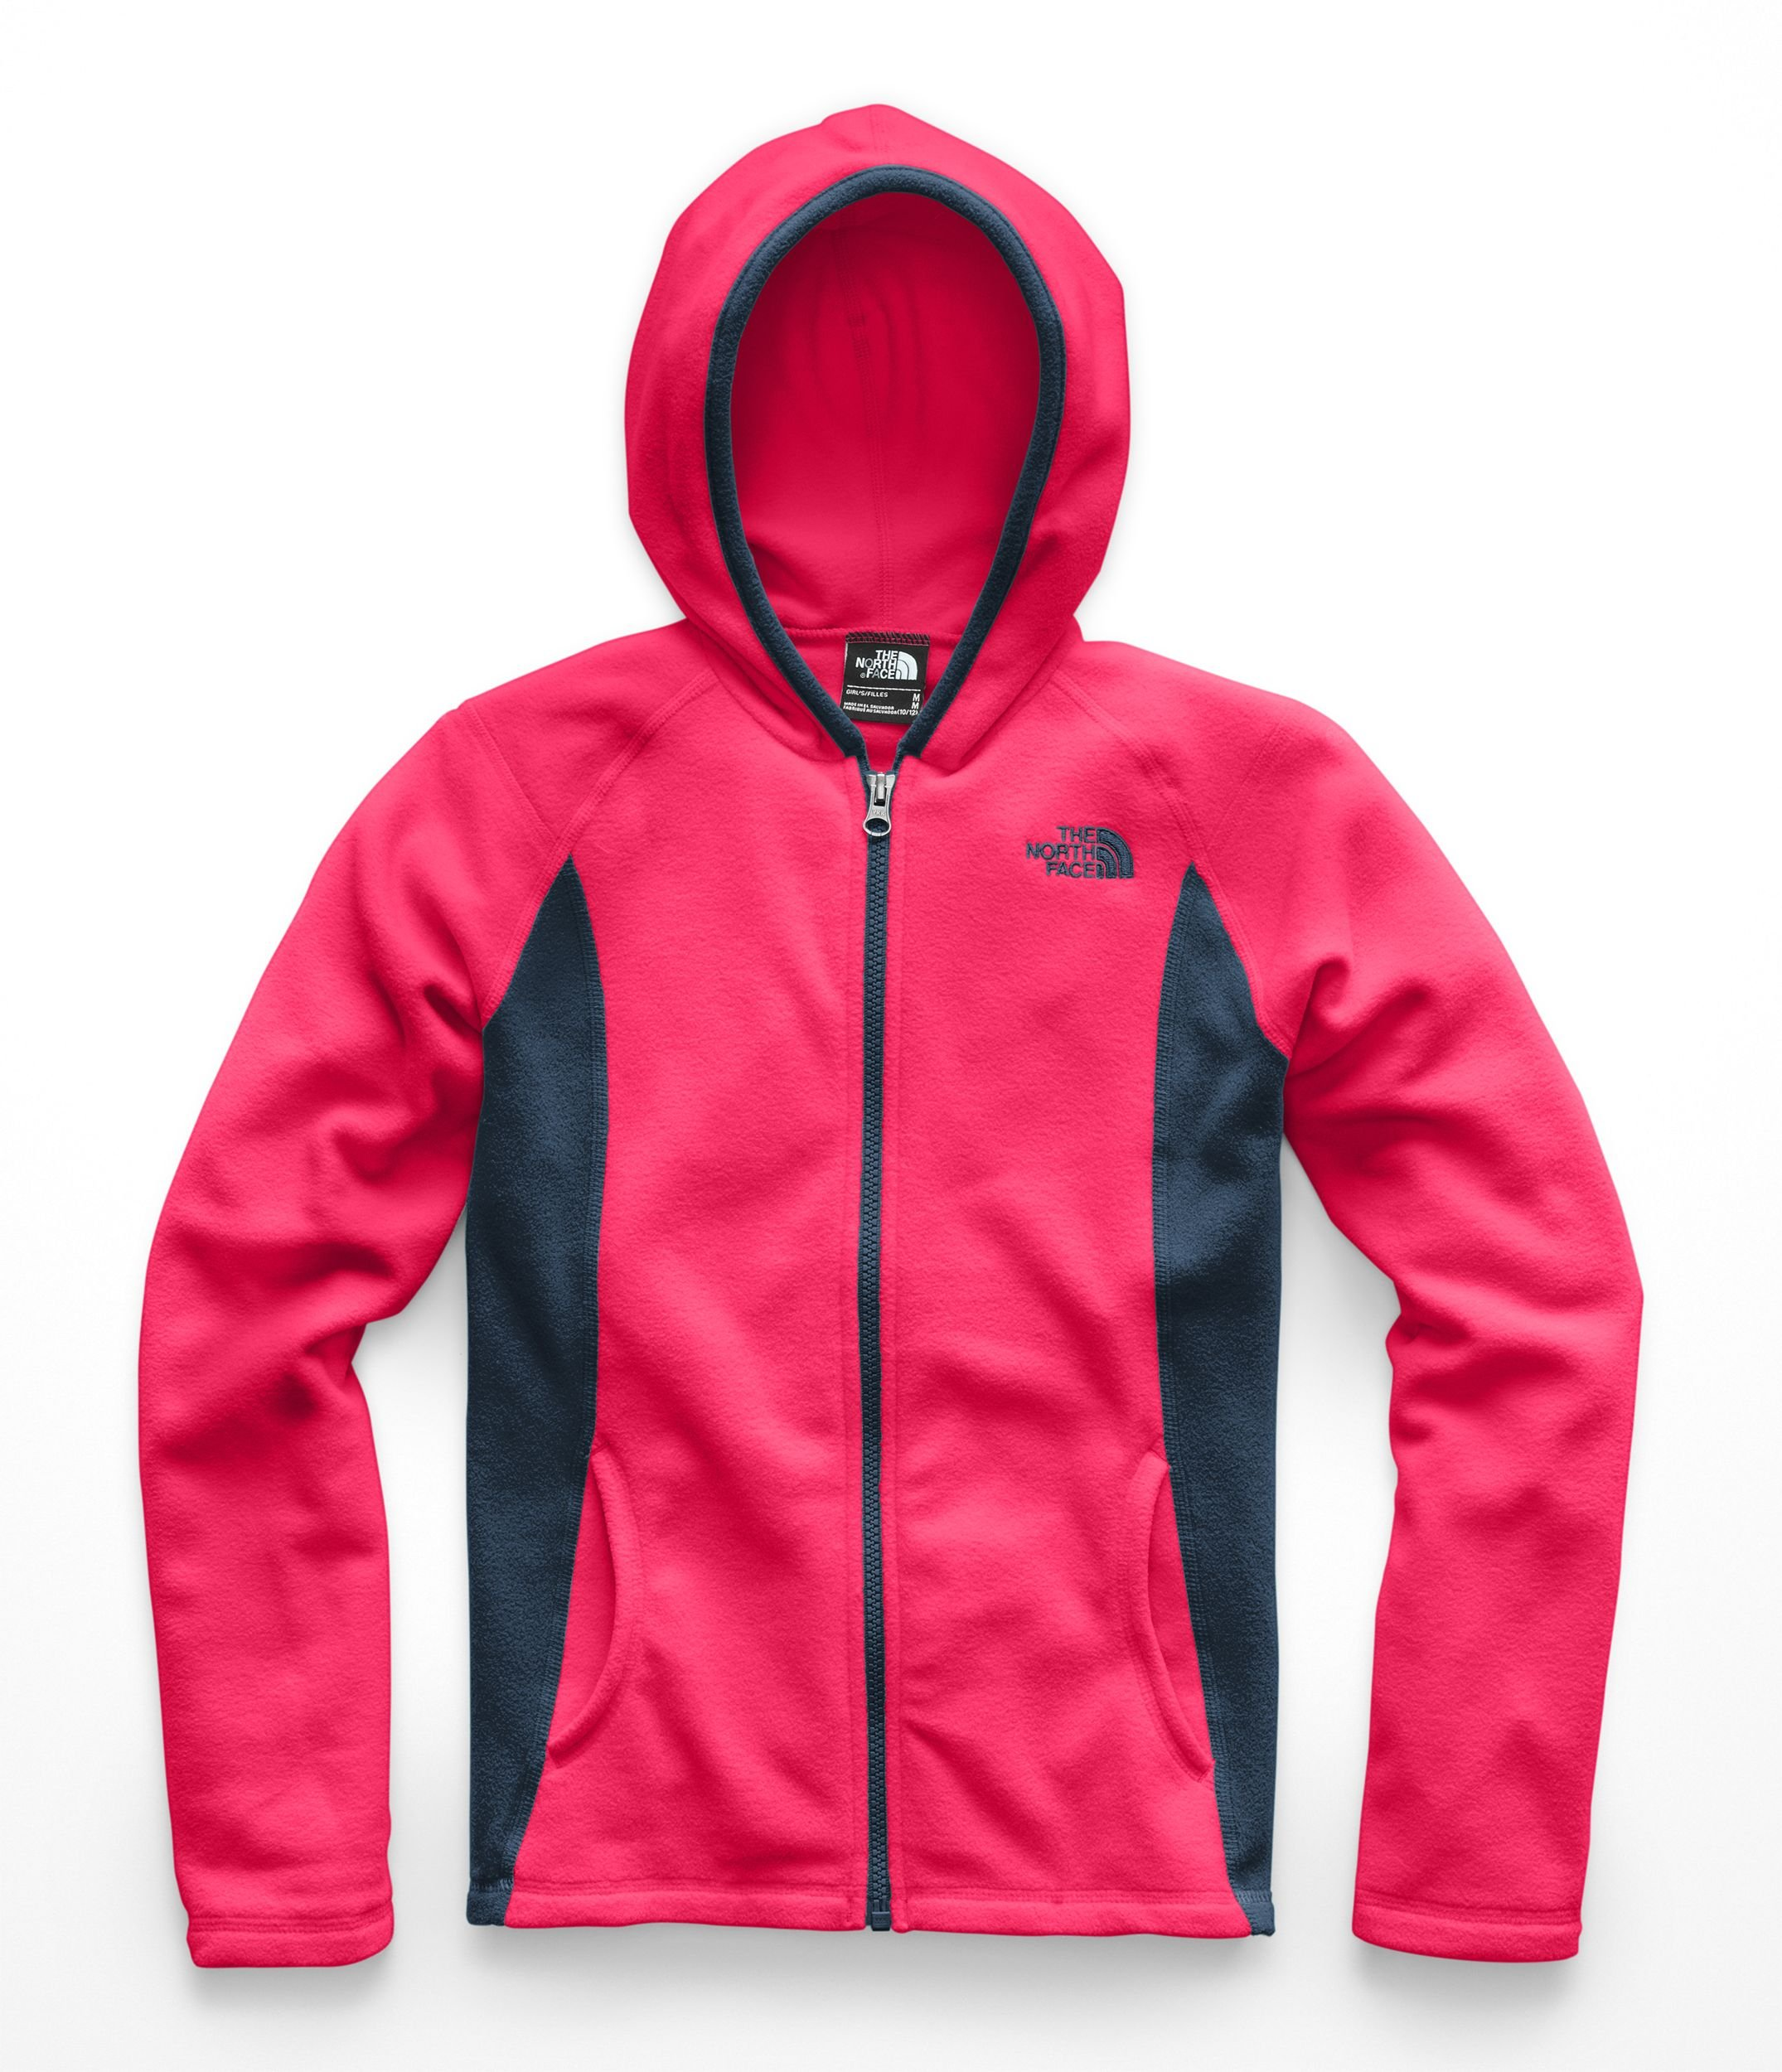 The North Face Girls Glacier Full Zip Hoodie - Atomic Pink - S